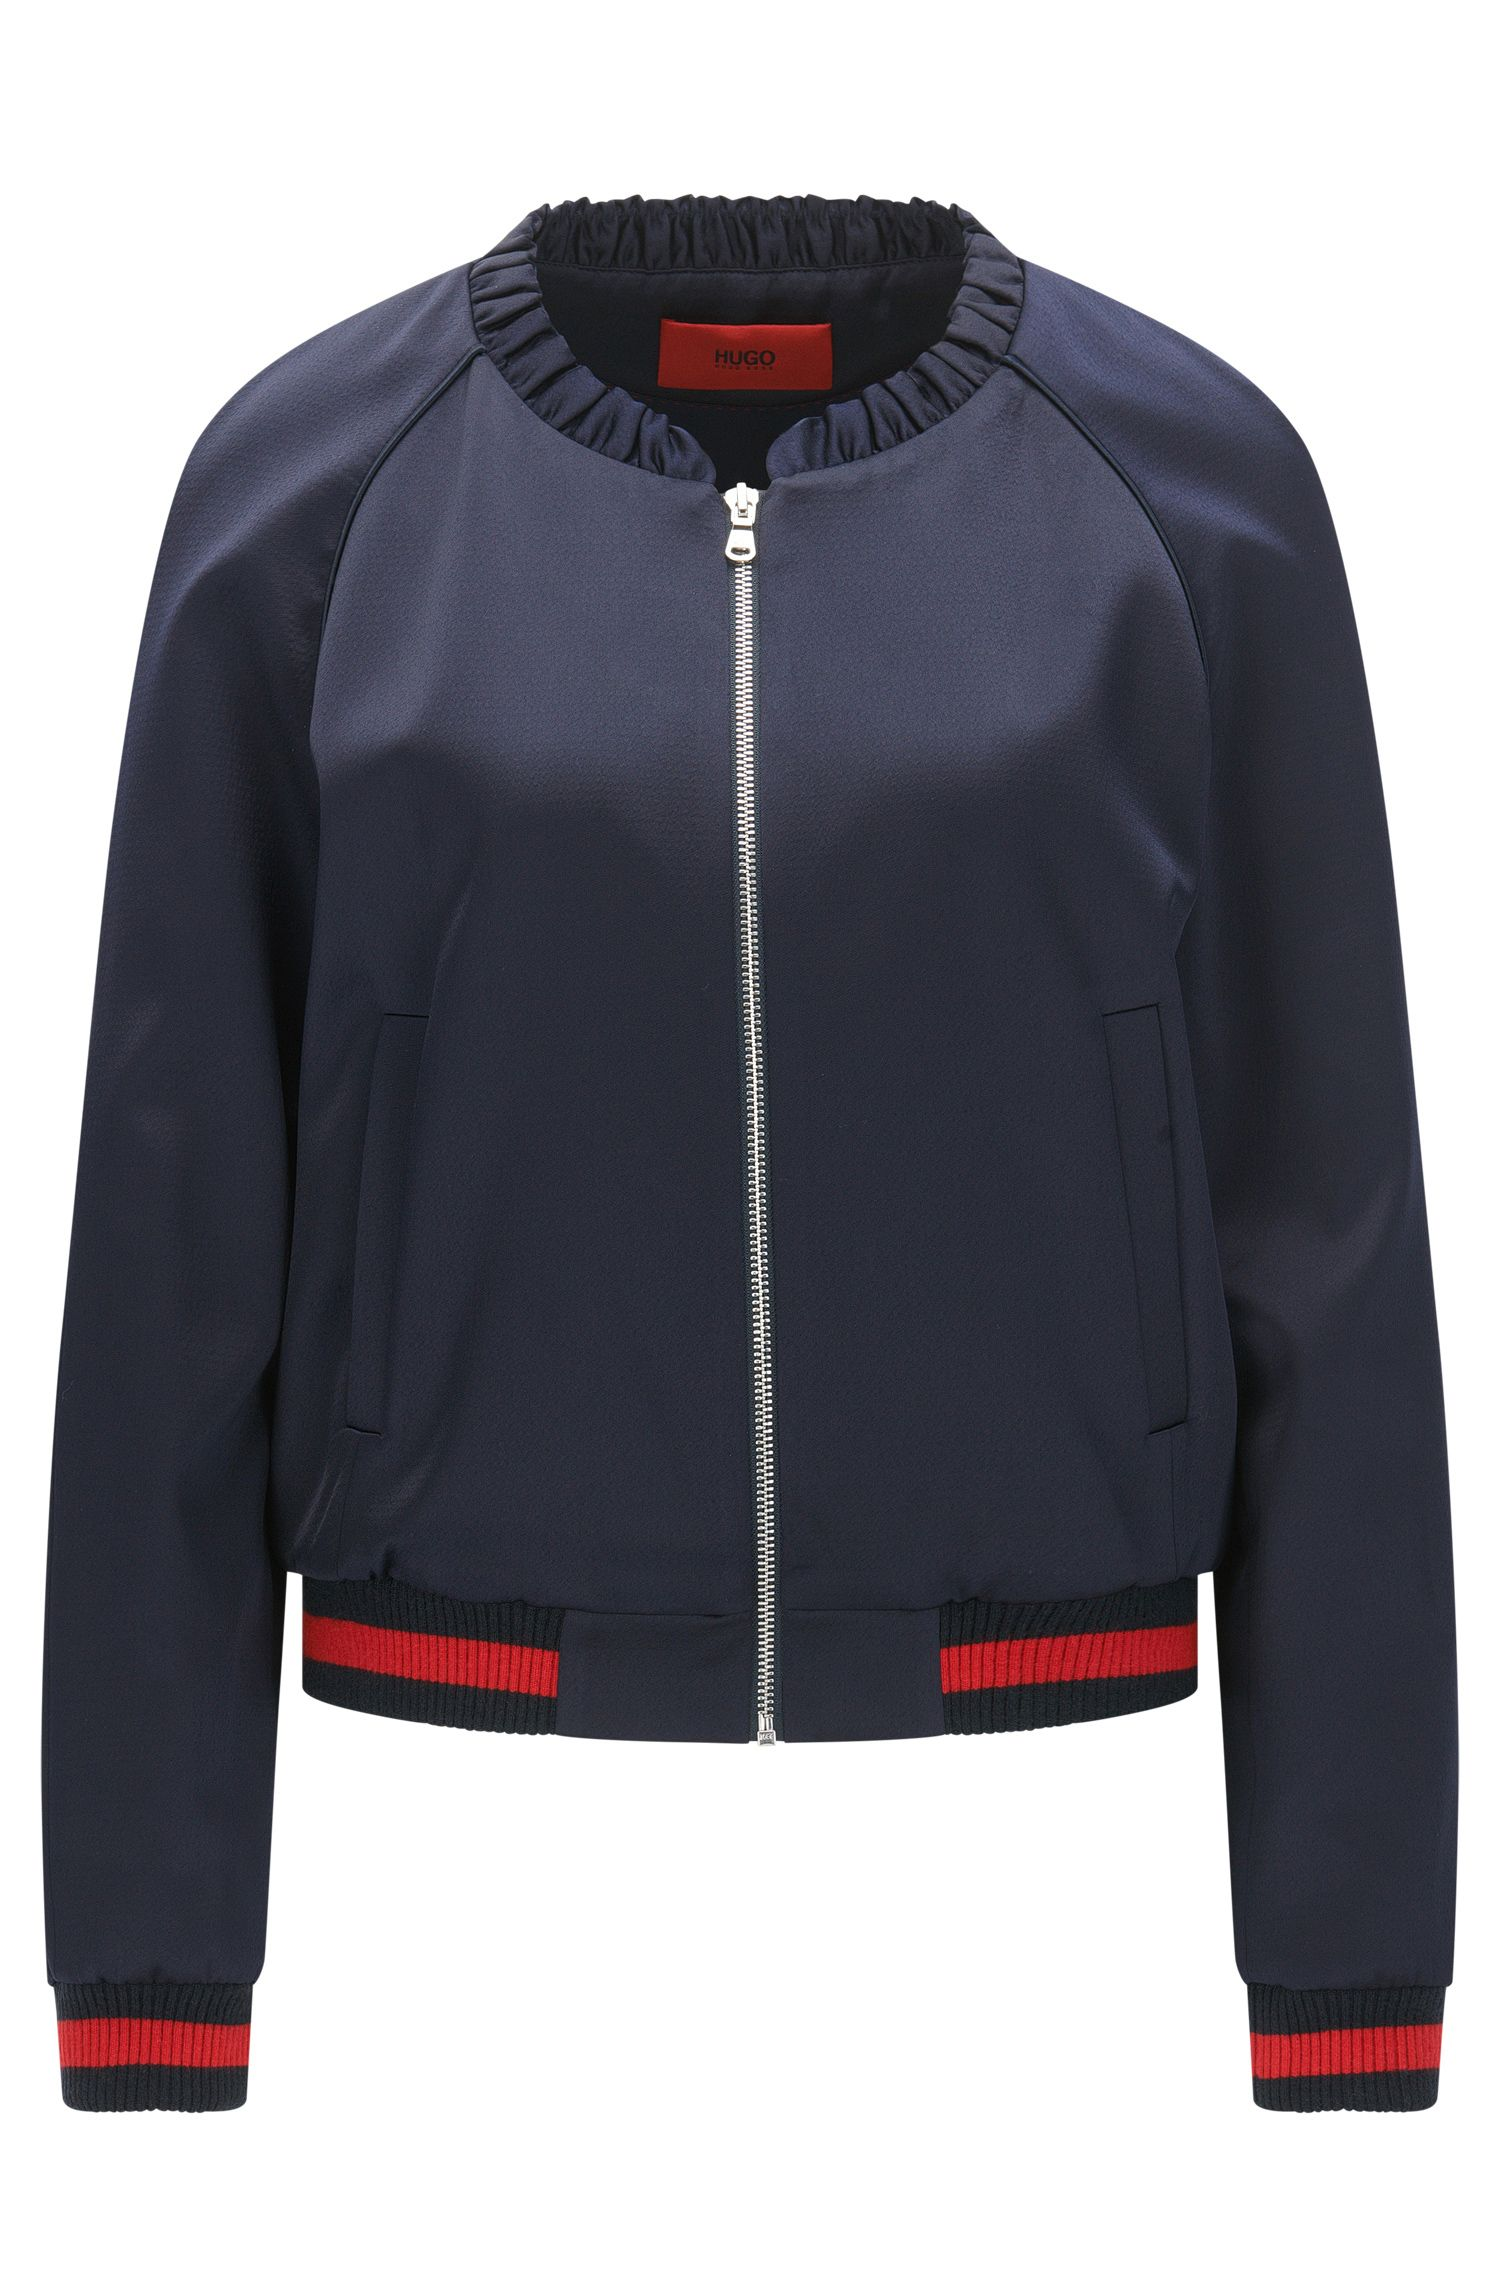 Relaxed-Fit Bomberjacke mit Statement-Stickerei